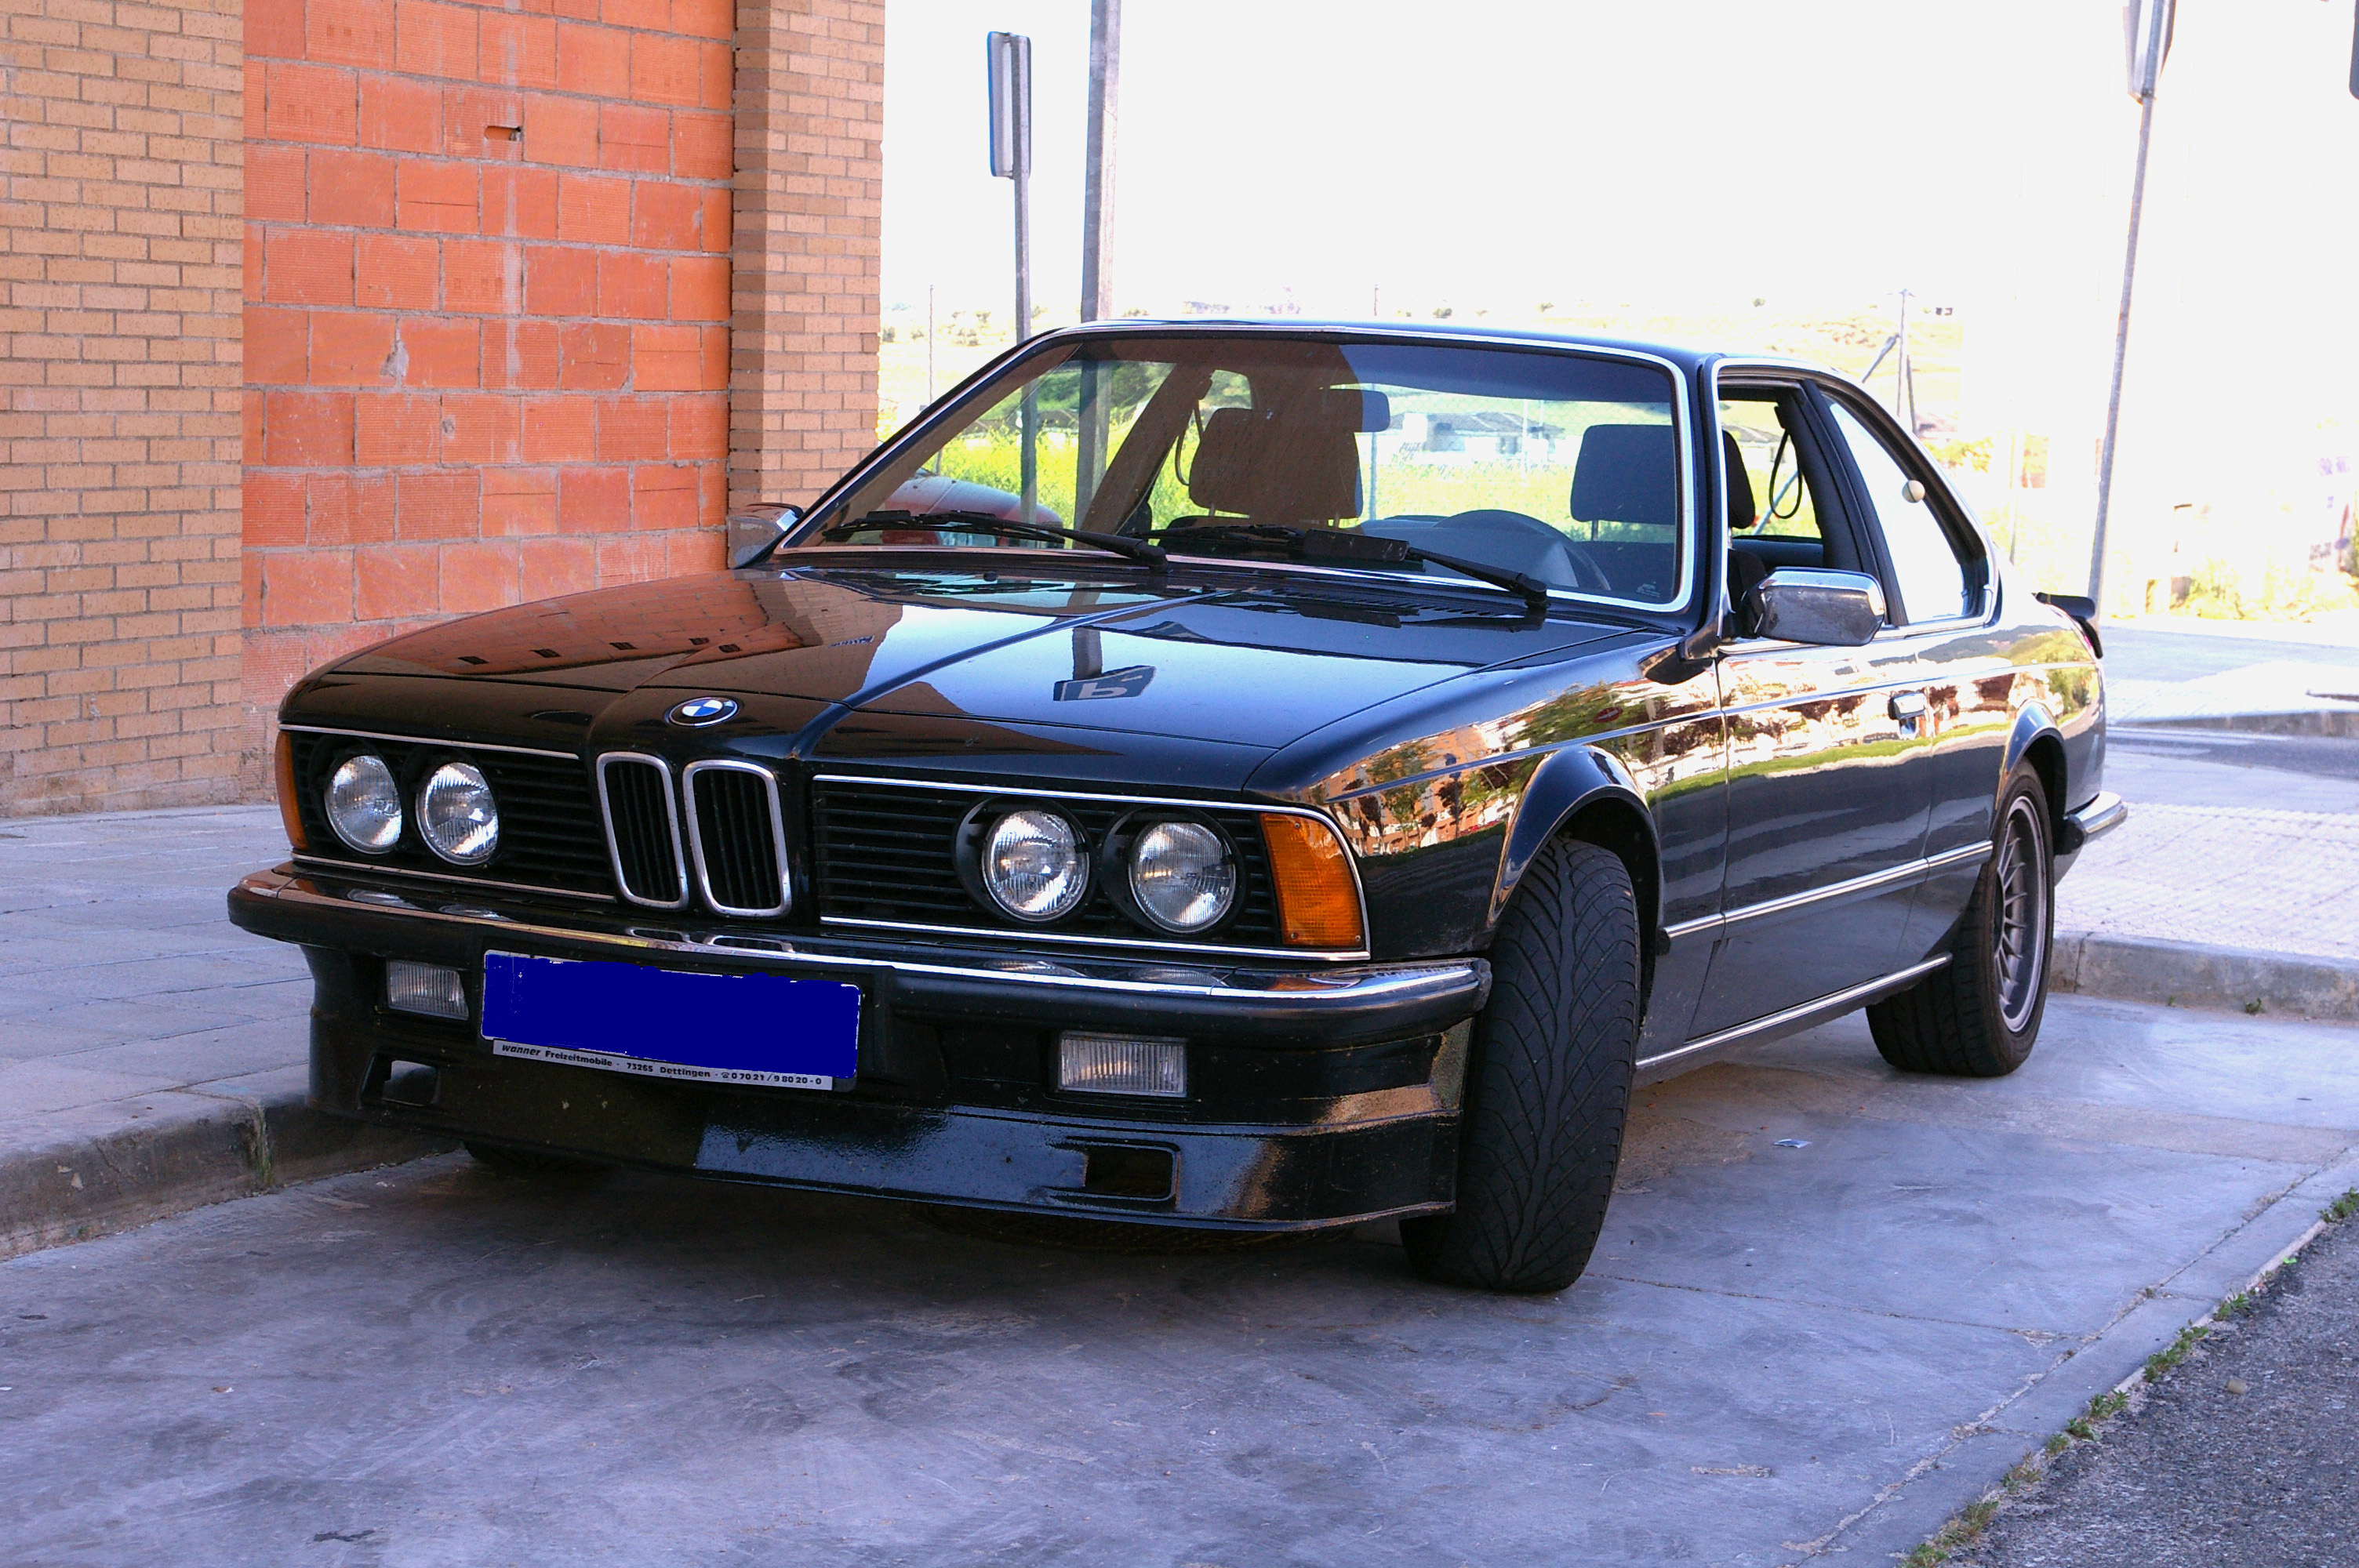 FileBMW ALPINA B Turbo Coupé Jpg Wikimedia Commons - Alpina bmw